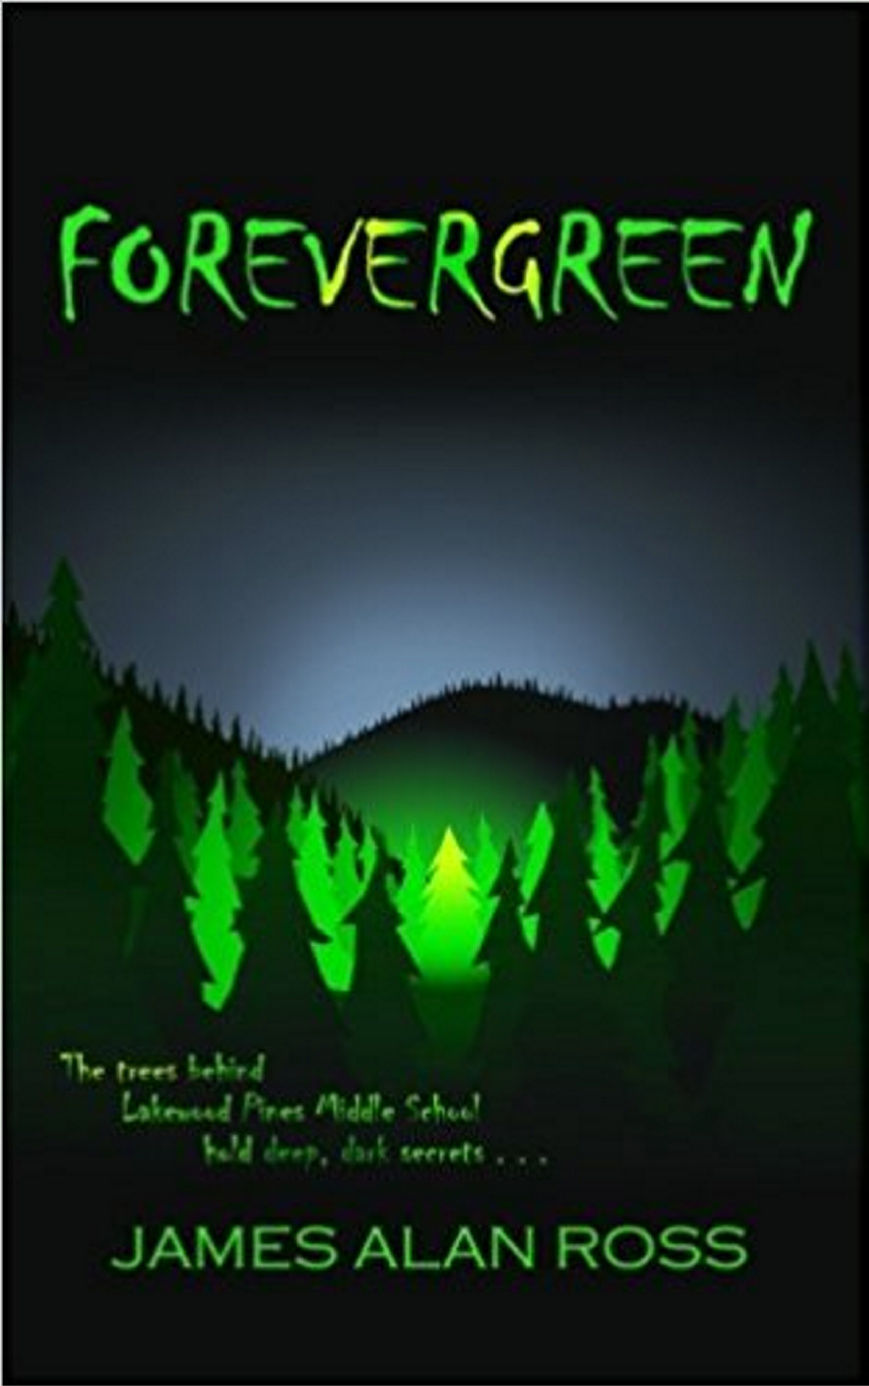 Spencerport gets 'creepy' in young adult book, 'Forevergreen'